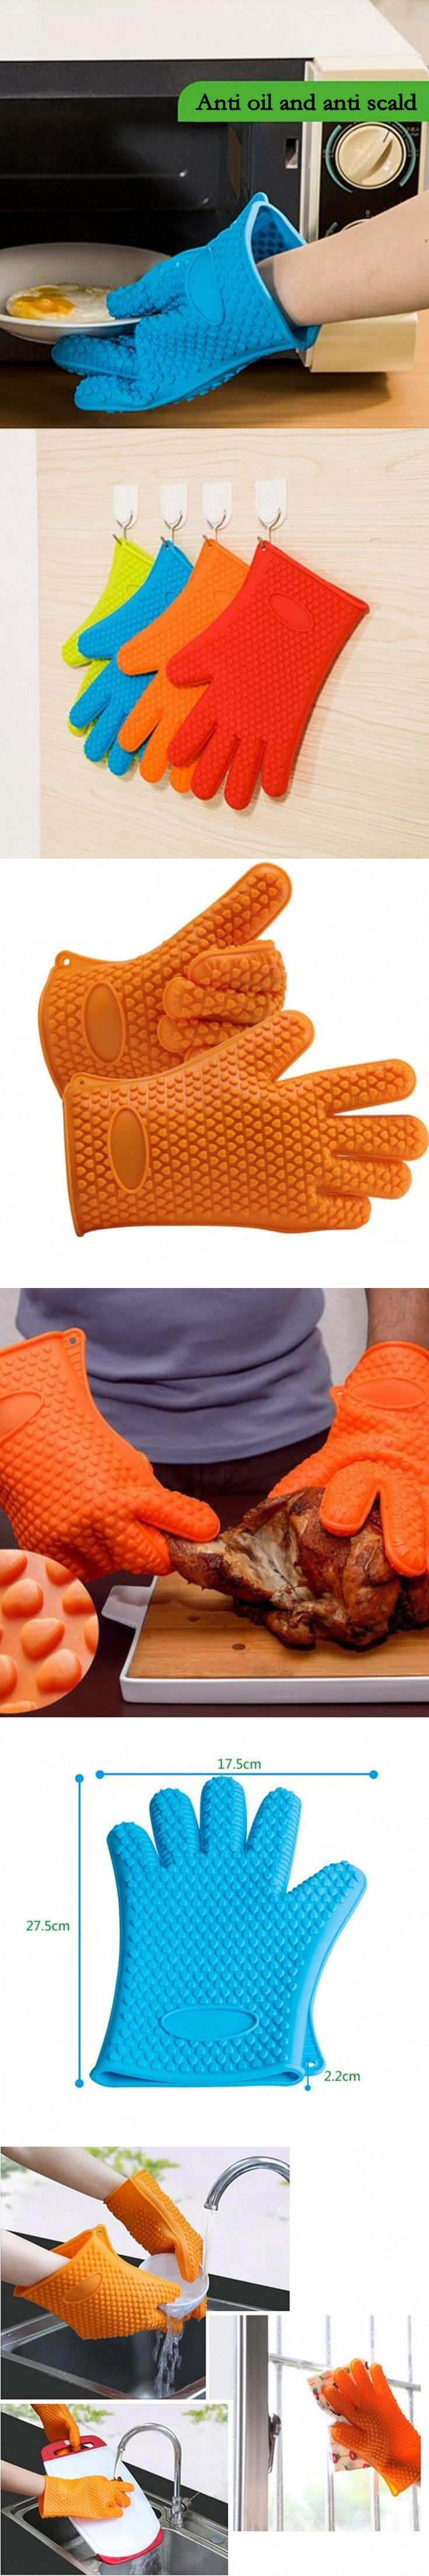 Multi Function Household Heat Resistant And Anti Scald Non Slip Silica Gel Heat Insulation Oven Microwave Oven Gloves